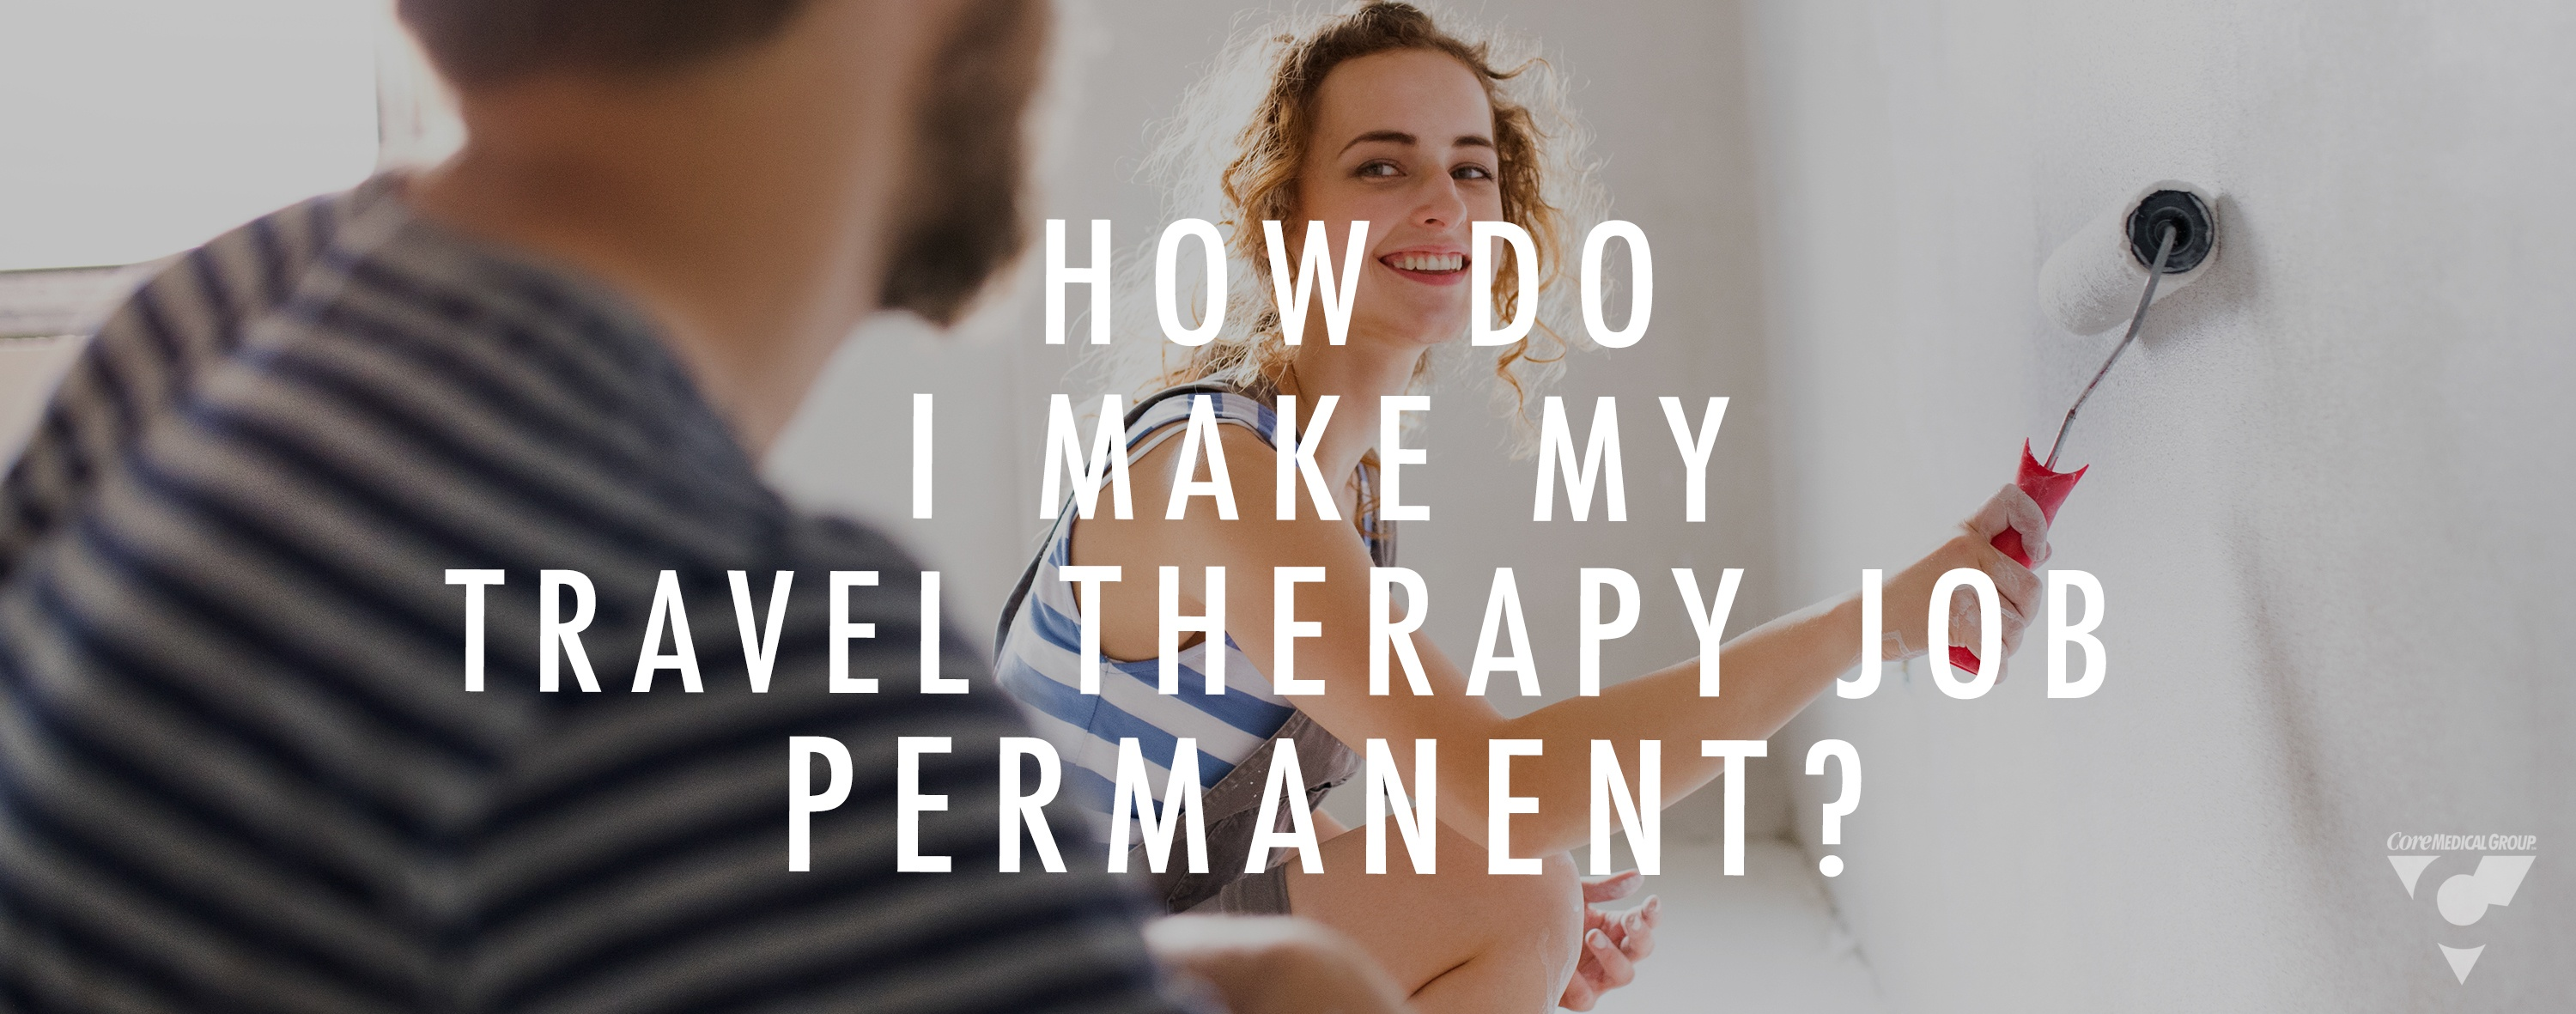 CMG Blog - How Do I Make My Travel Therapy Job Permanent.jpg